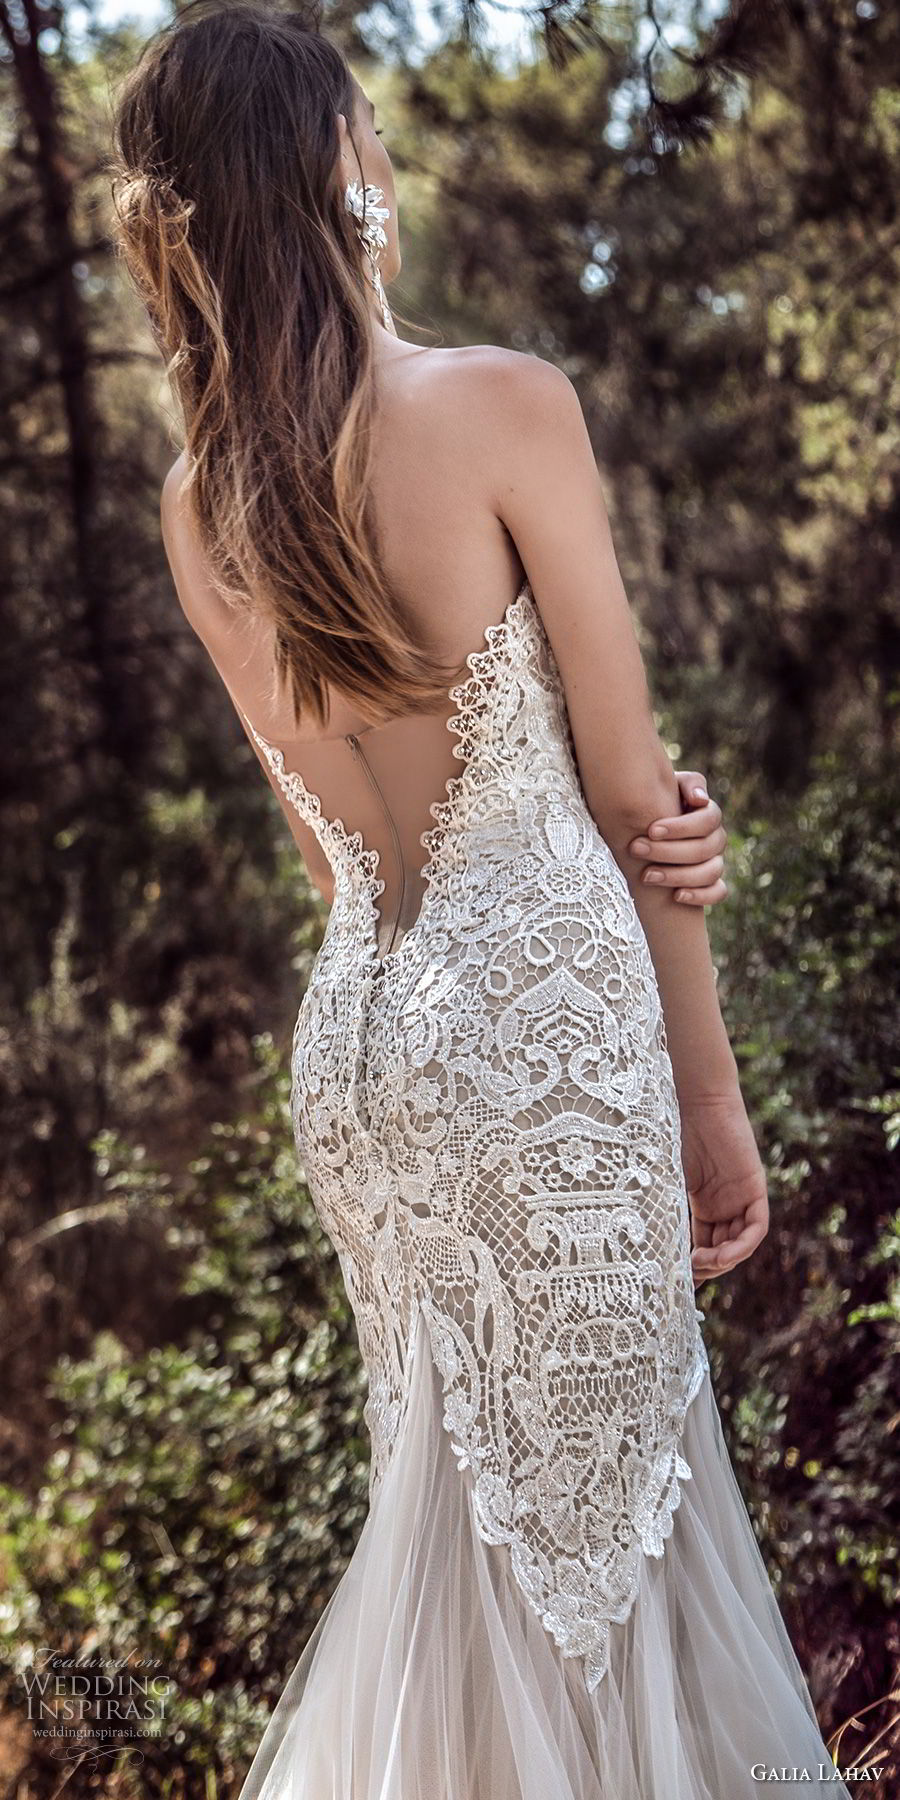 galia lahav gala 4 2018 bridal strapless deep plunging sweetheart neckline full embellishment elegant drop waist a line wedding dress open low back chapel train (912) bv